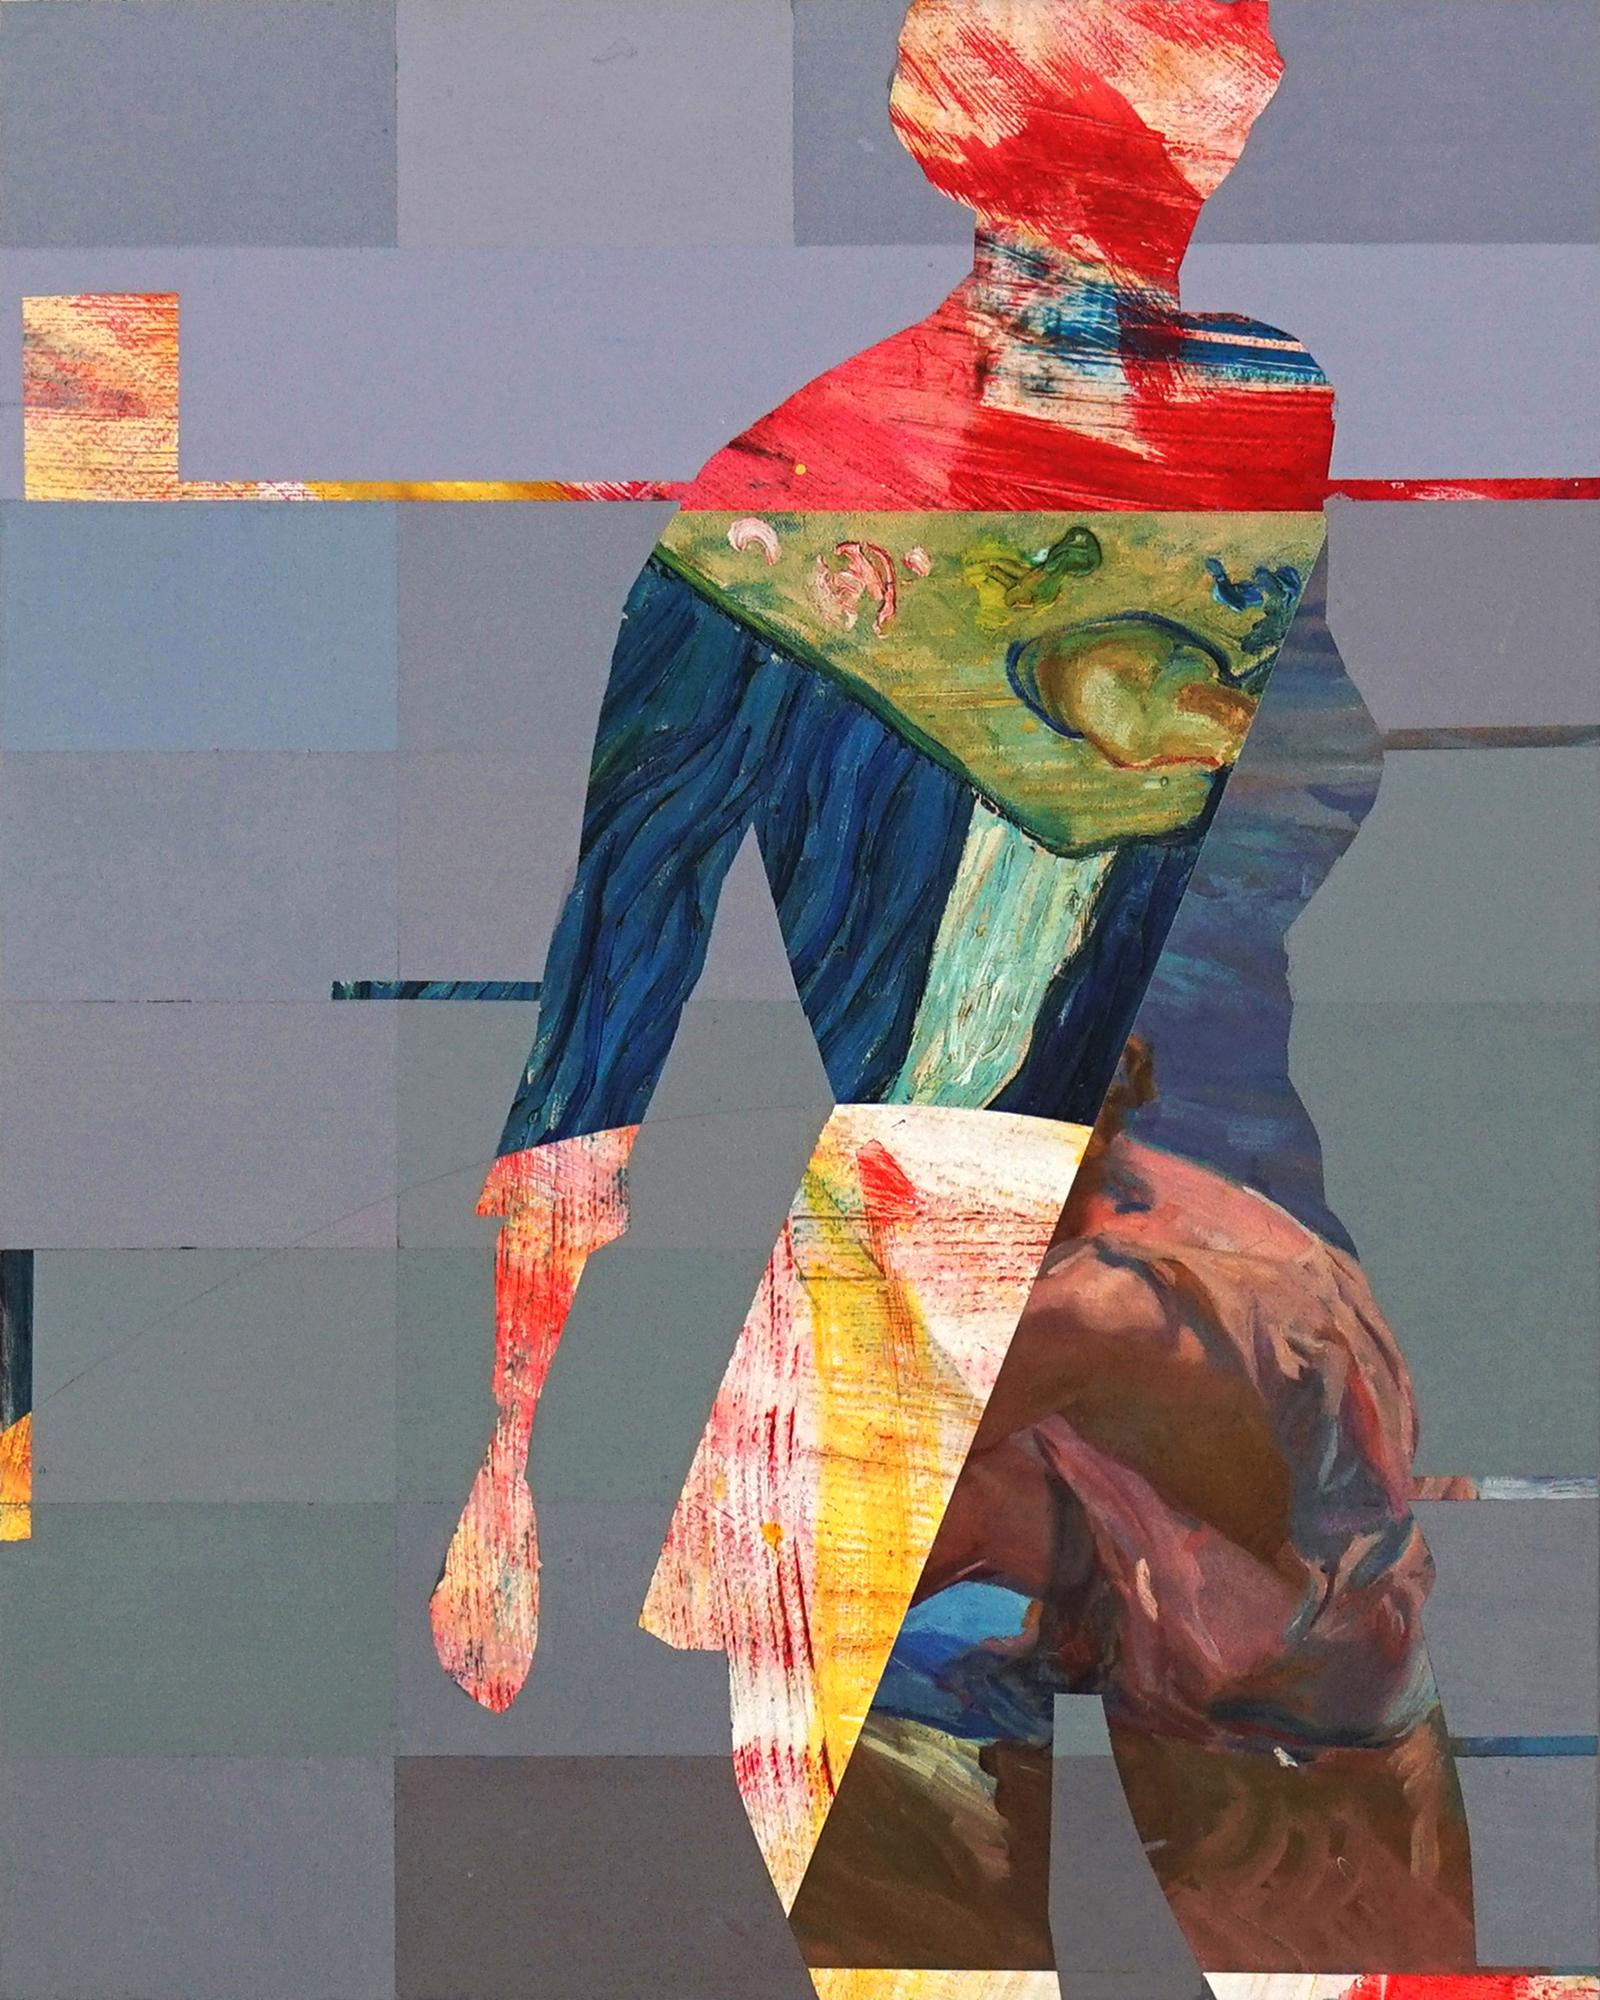 Pixel Study 6 - colorful abstract and figurative painting and photo of a women